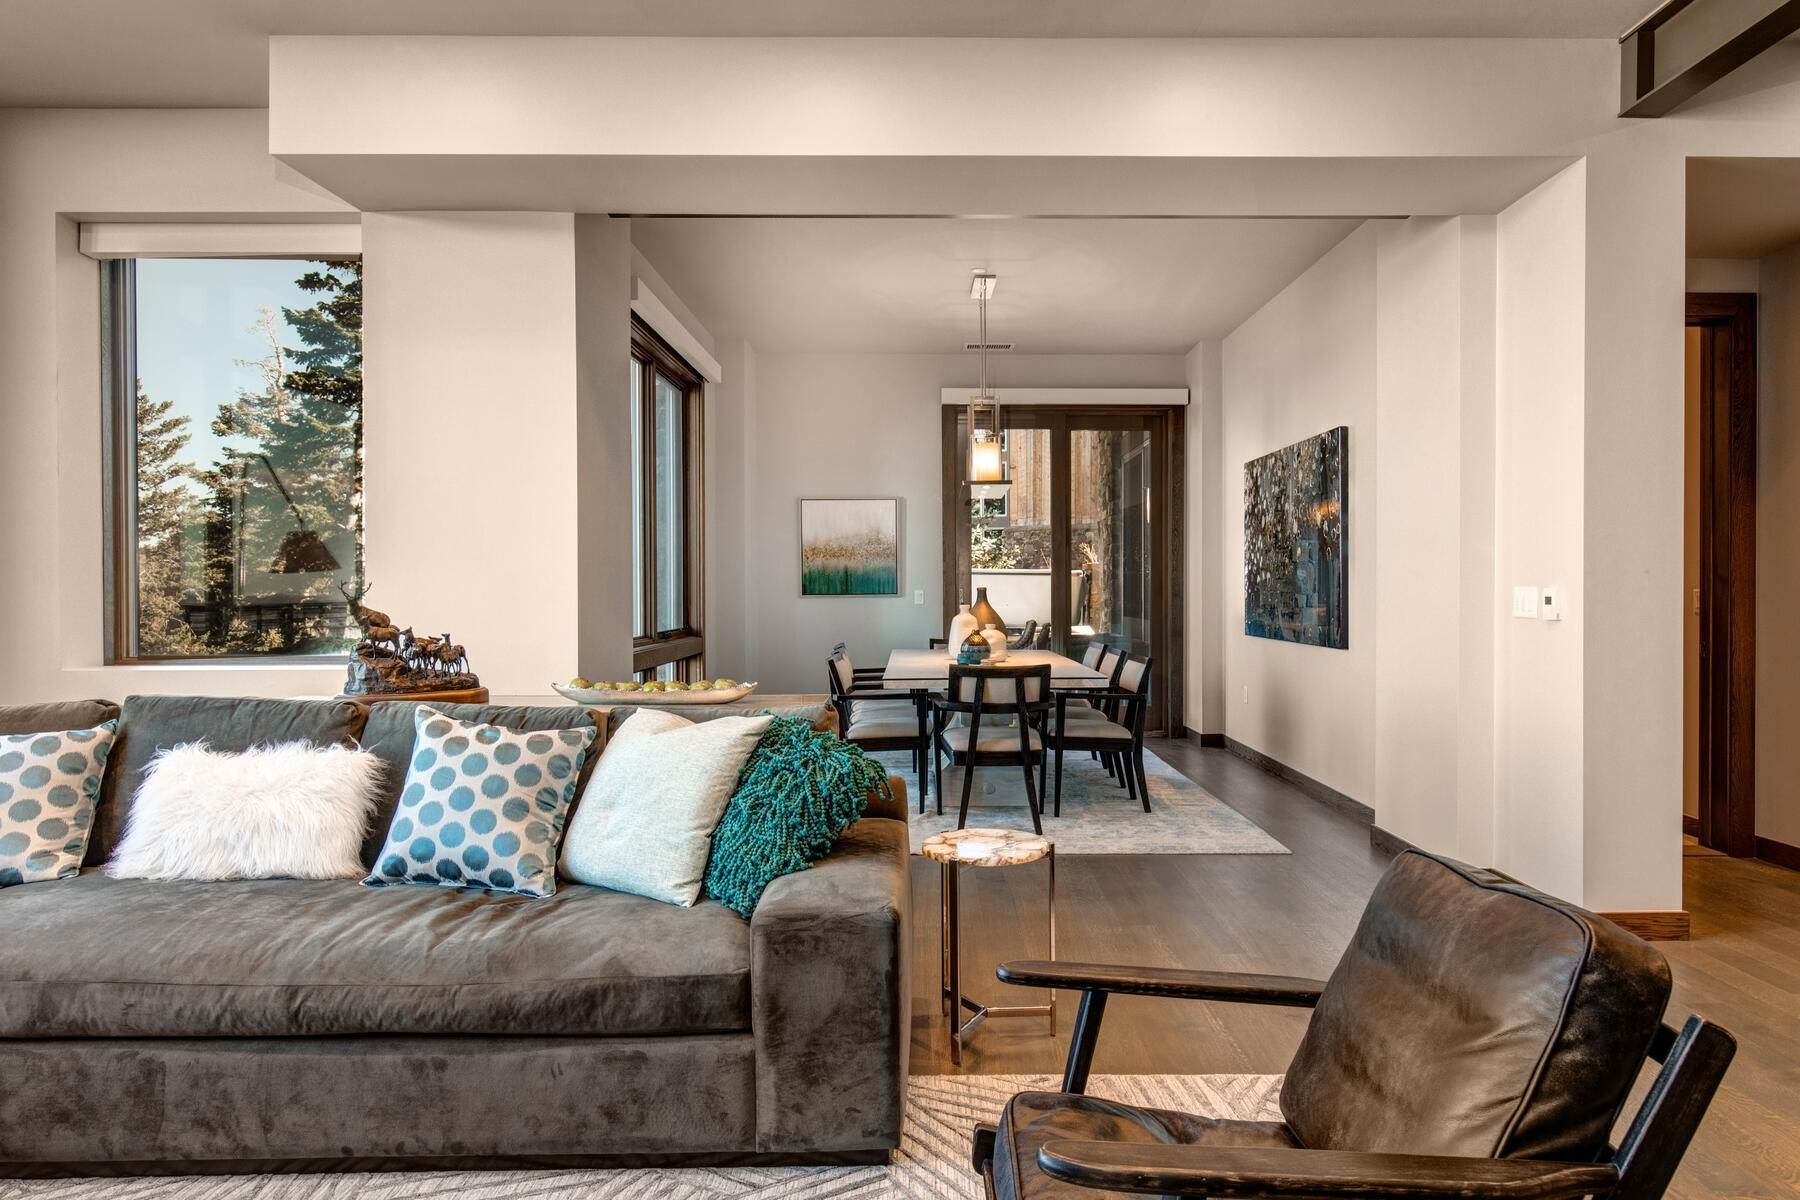 8. Condominiums for Sale at Ski-In Ski-Out Alpine Luxury Living at Stein Eriksen Residences 6702 Stein Circle #131 Park City, Utah 84060 United States